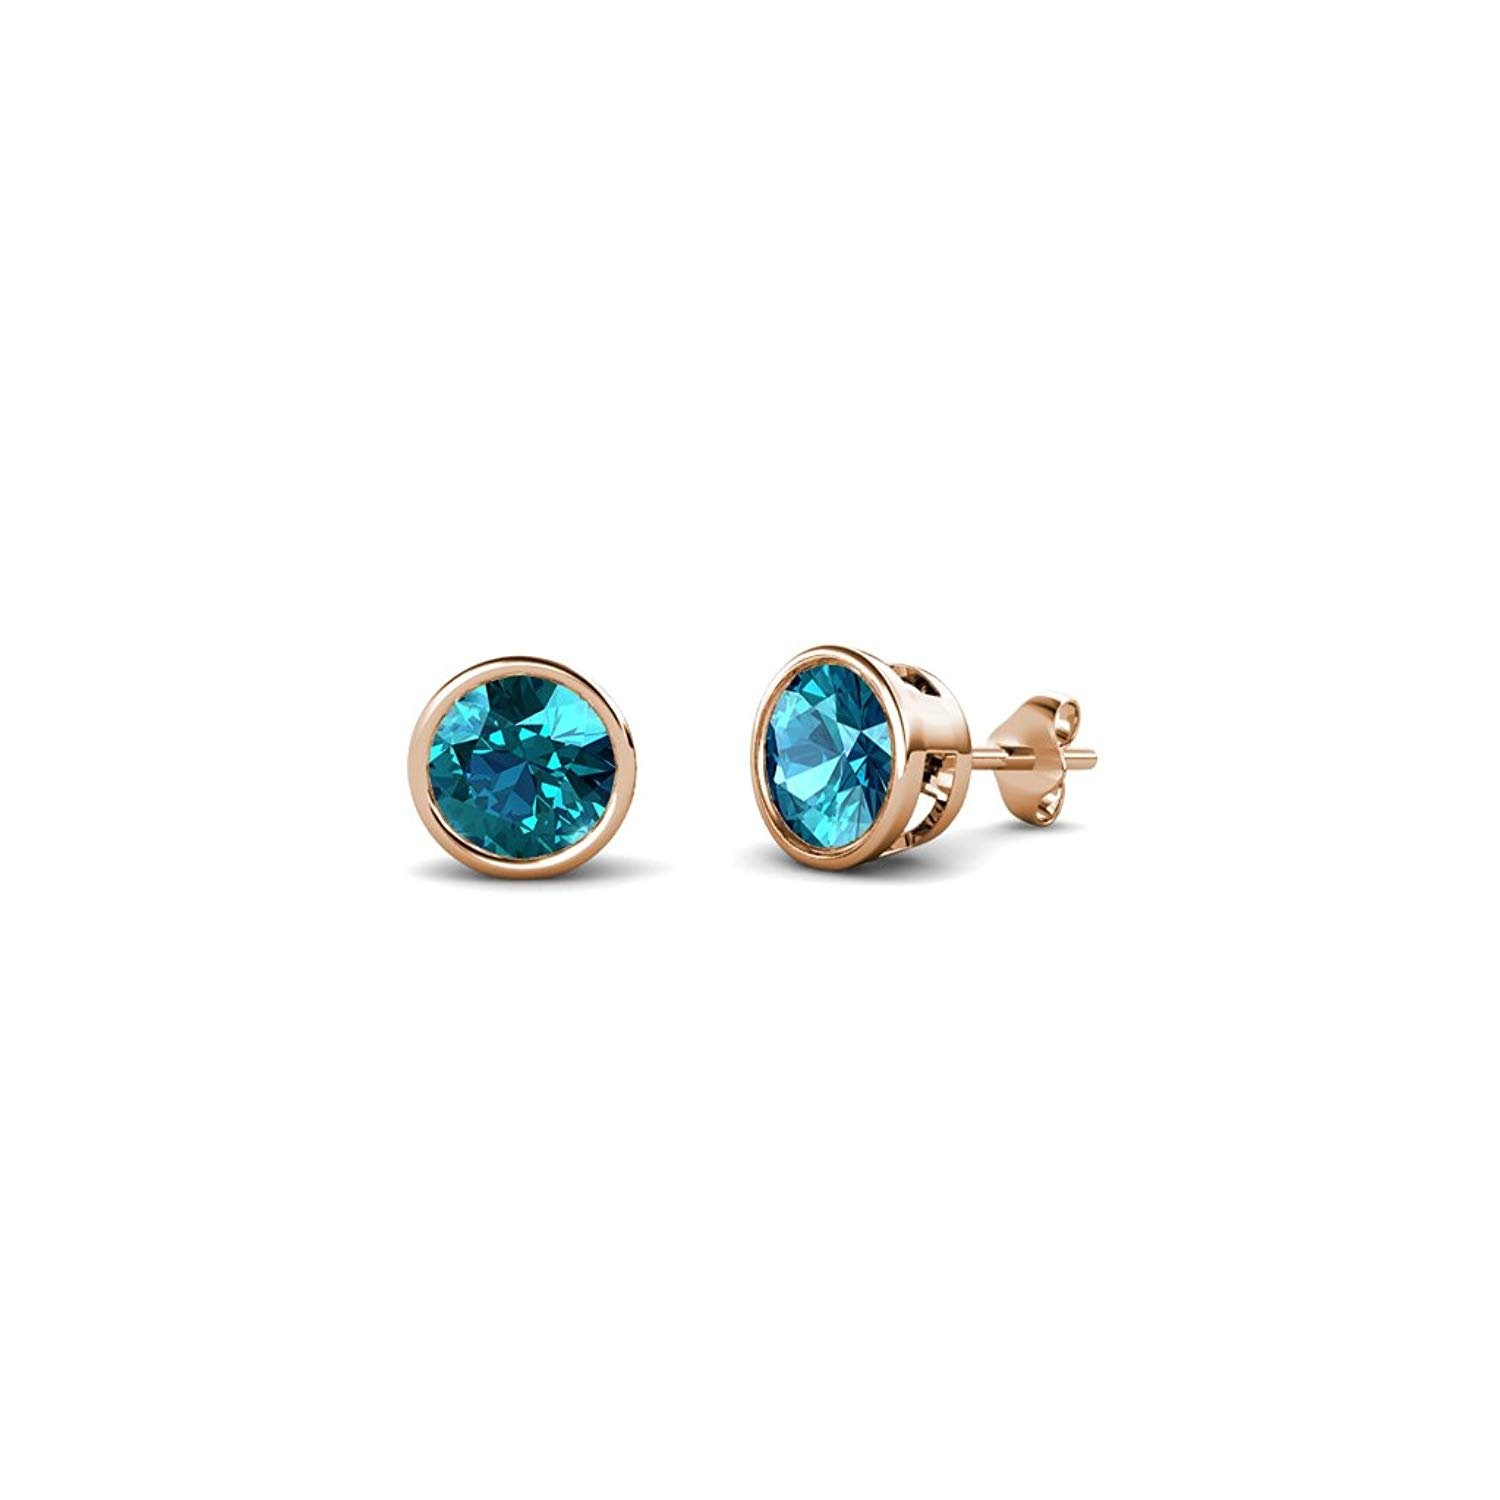 London Blue Topaz 4mm Bezel Set Solitaire Stud Earrings 0.60 ct tw in 14K Rose Gold by TriJewels